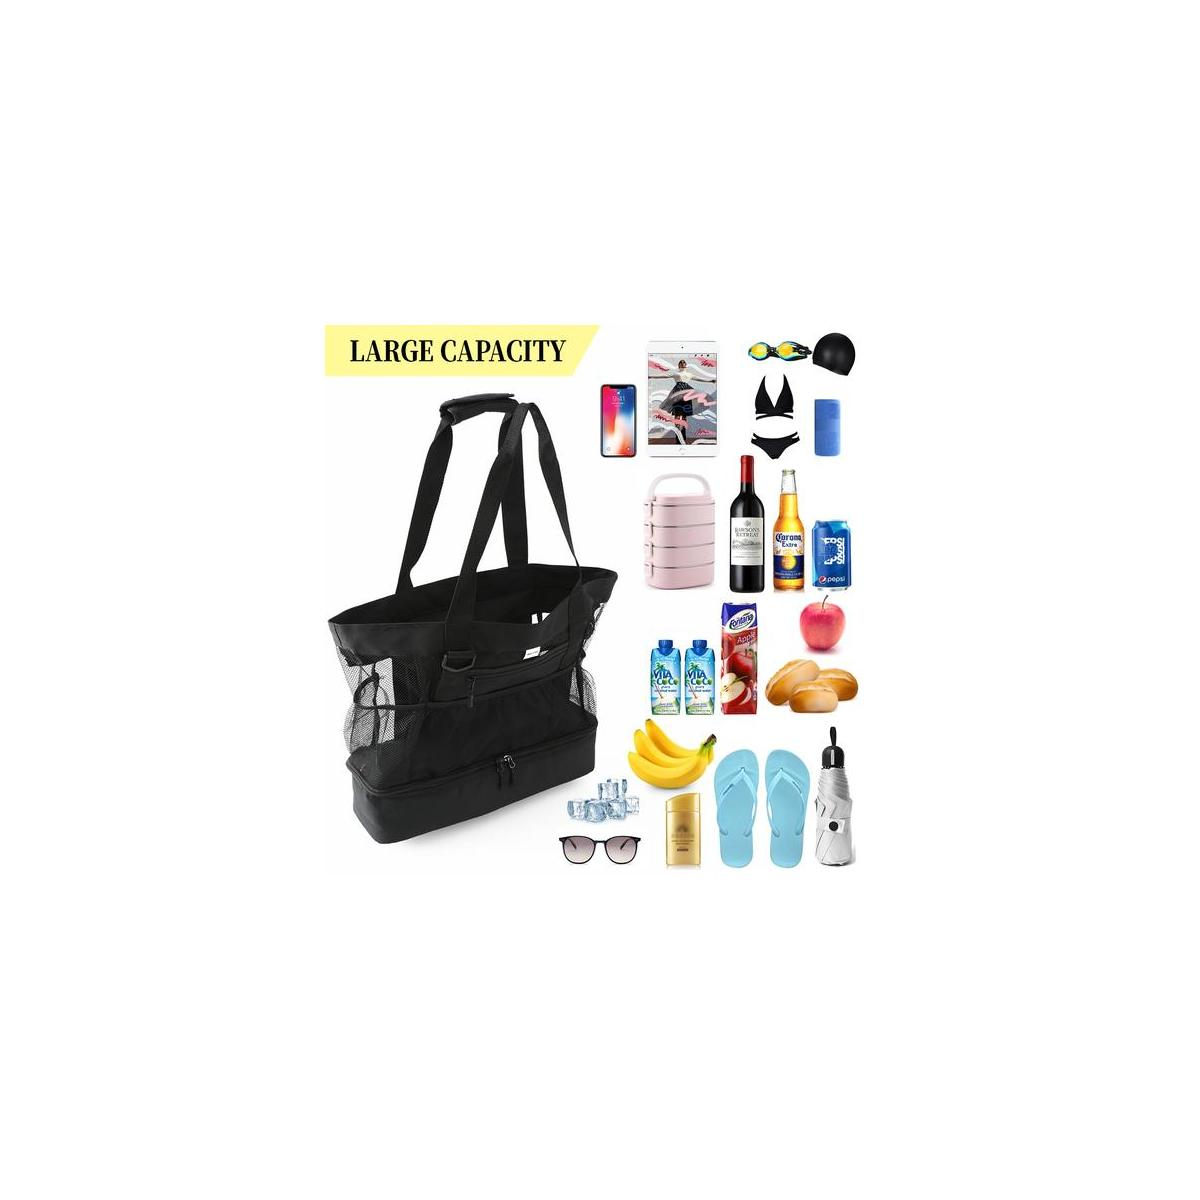 Beach tote Bag with Insulated Leak-proof Cooler,Mesh beach bag-( Black color)